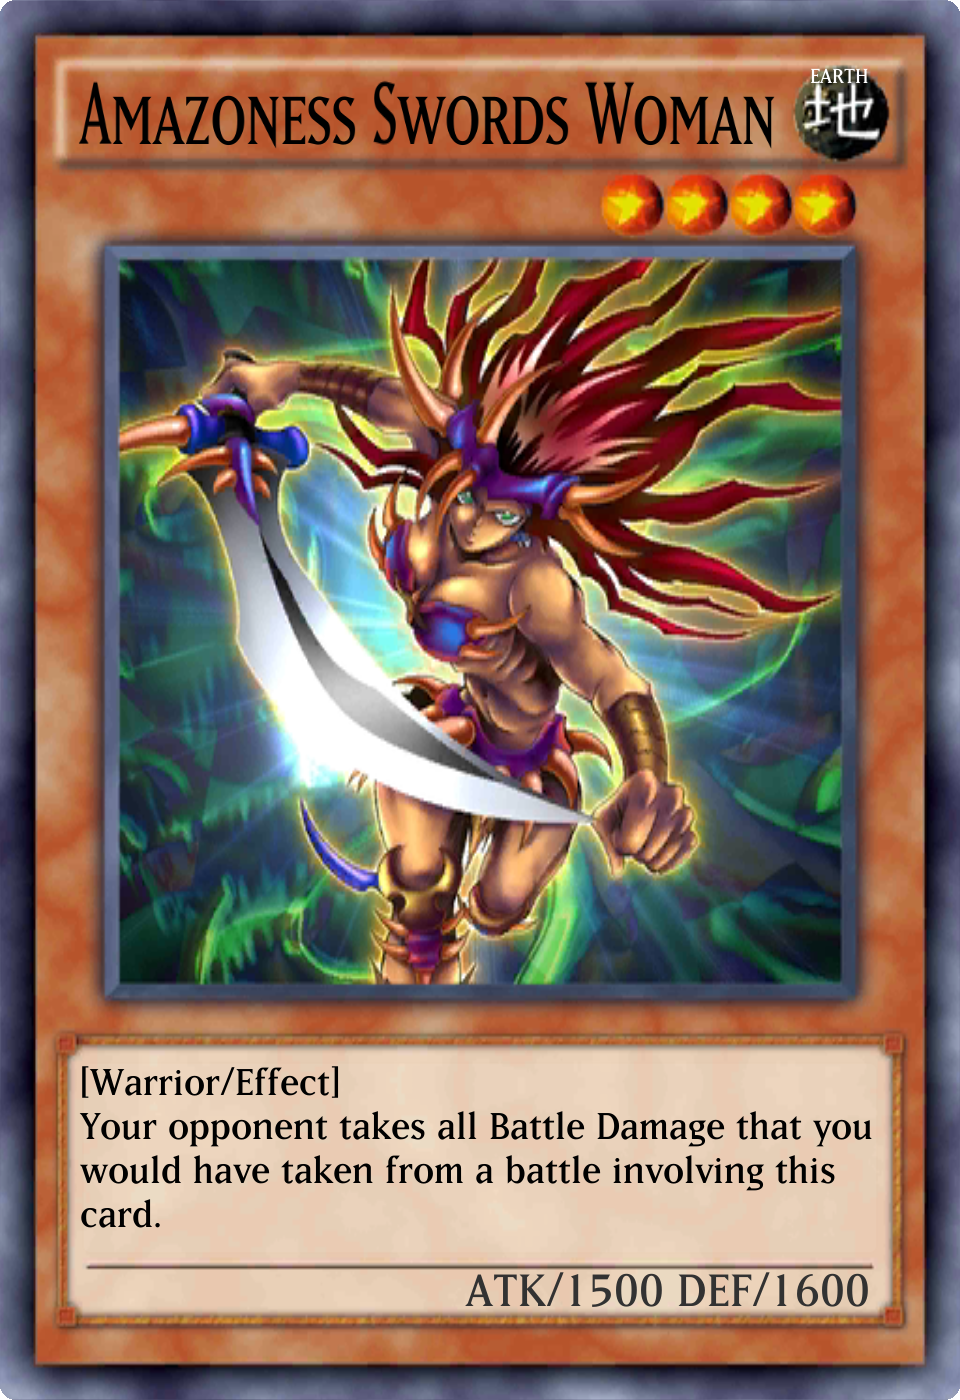 Amazoness Swords Woman - Yu-Gi-Oh! - Its time to Duel!